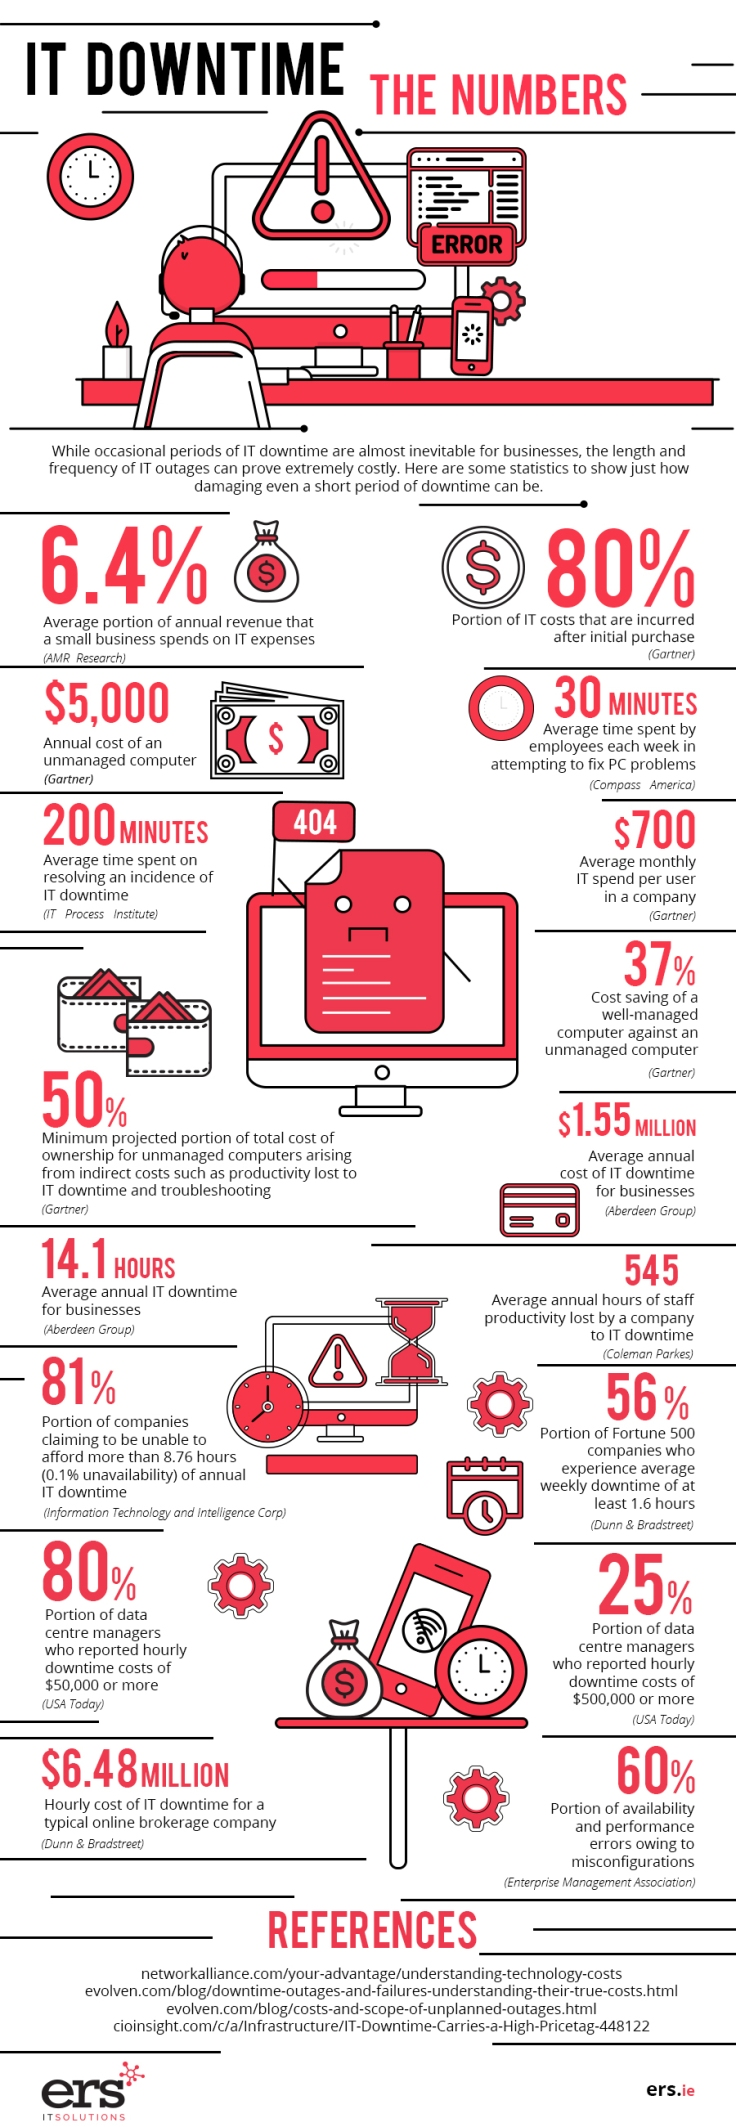 IT Downtime The Numbers - Infographic (1)